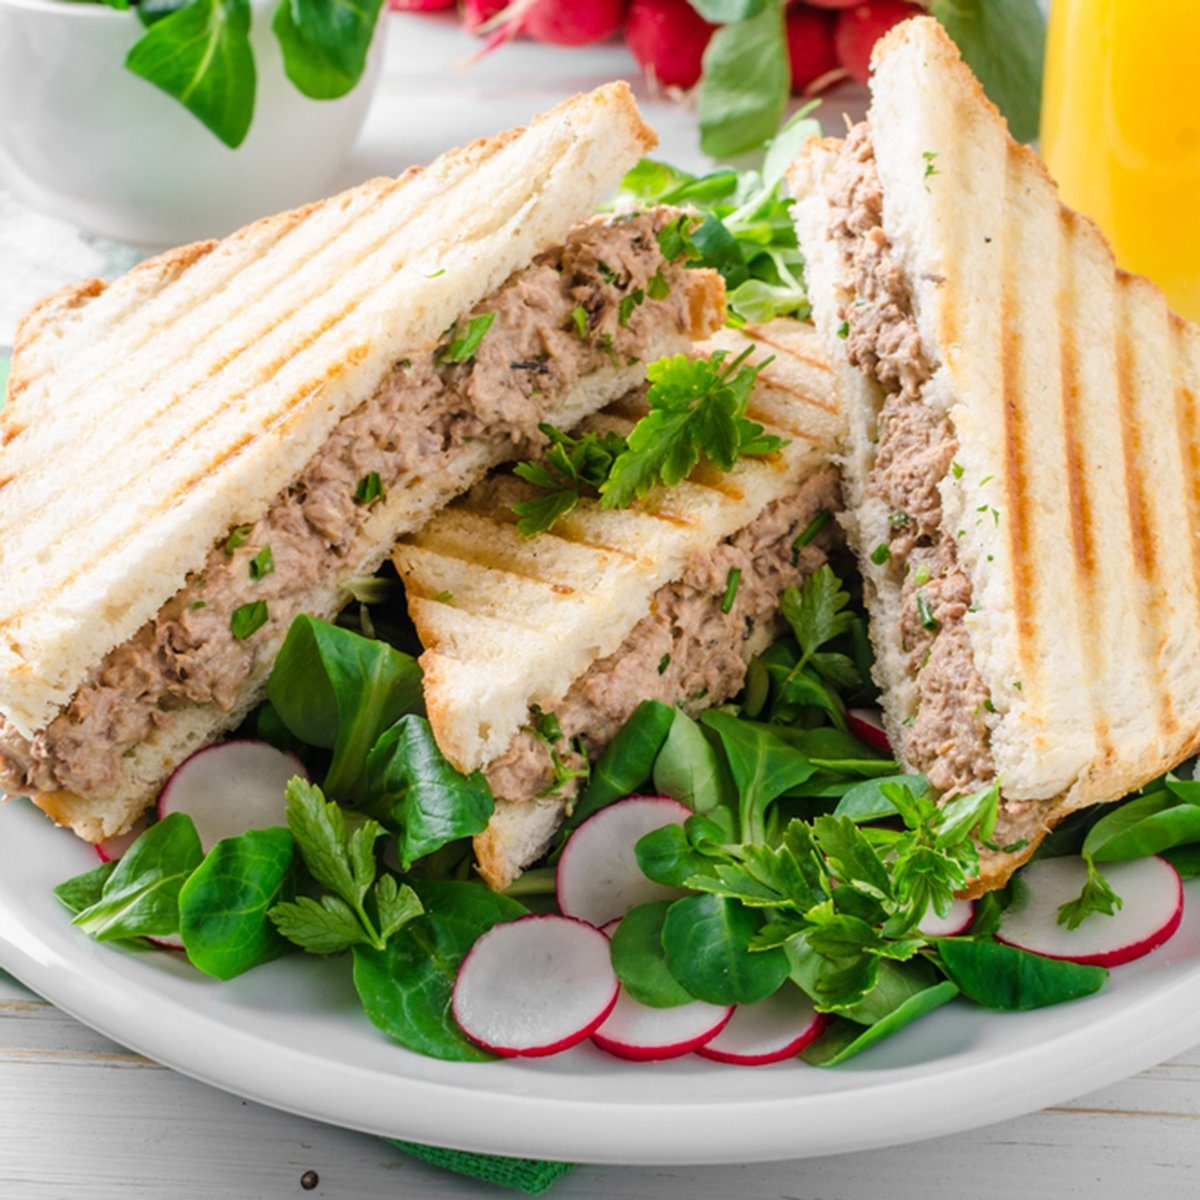 Tuna salad sandwitch with lamb's lettuce and radishes